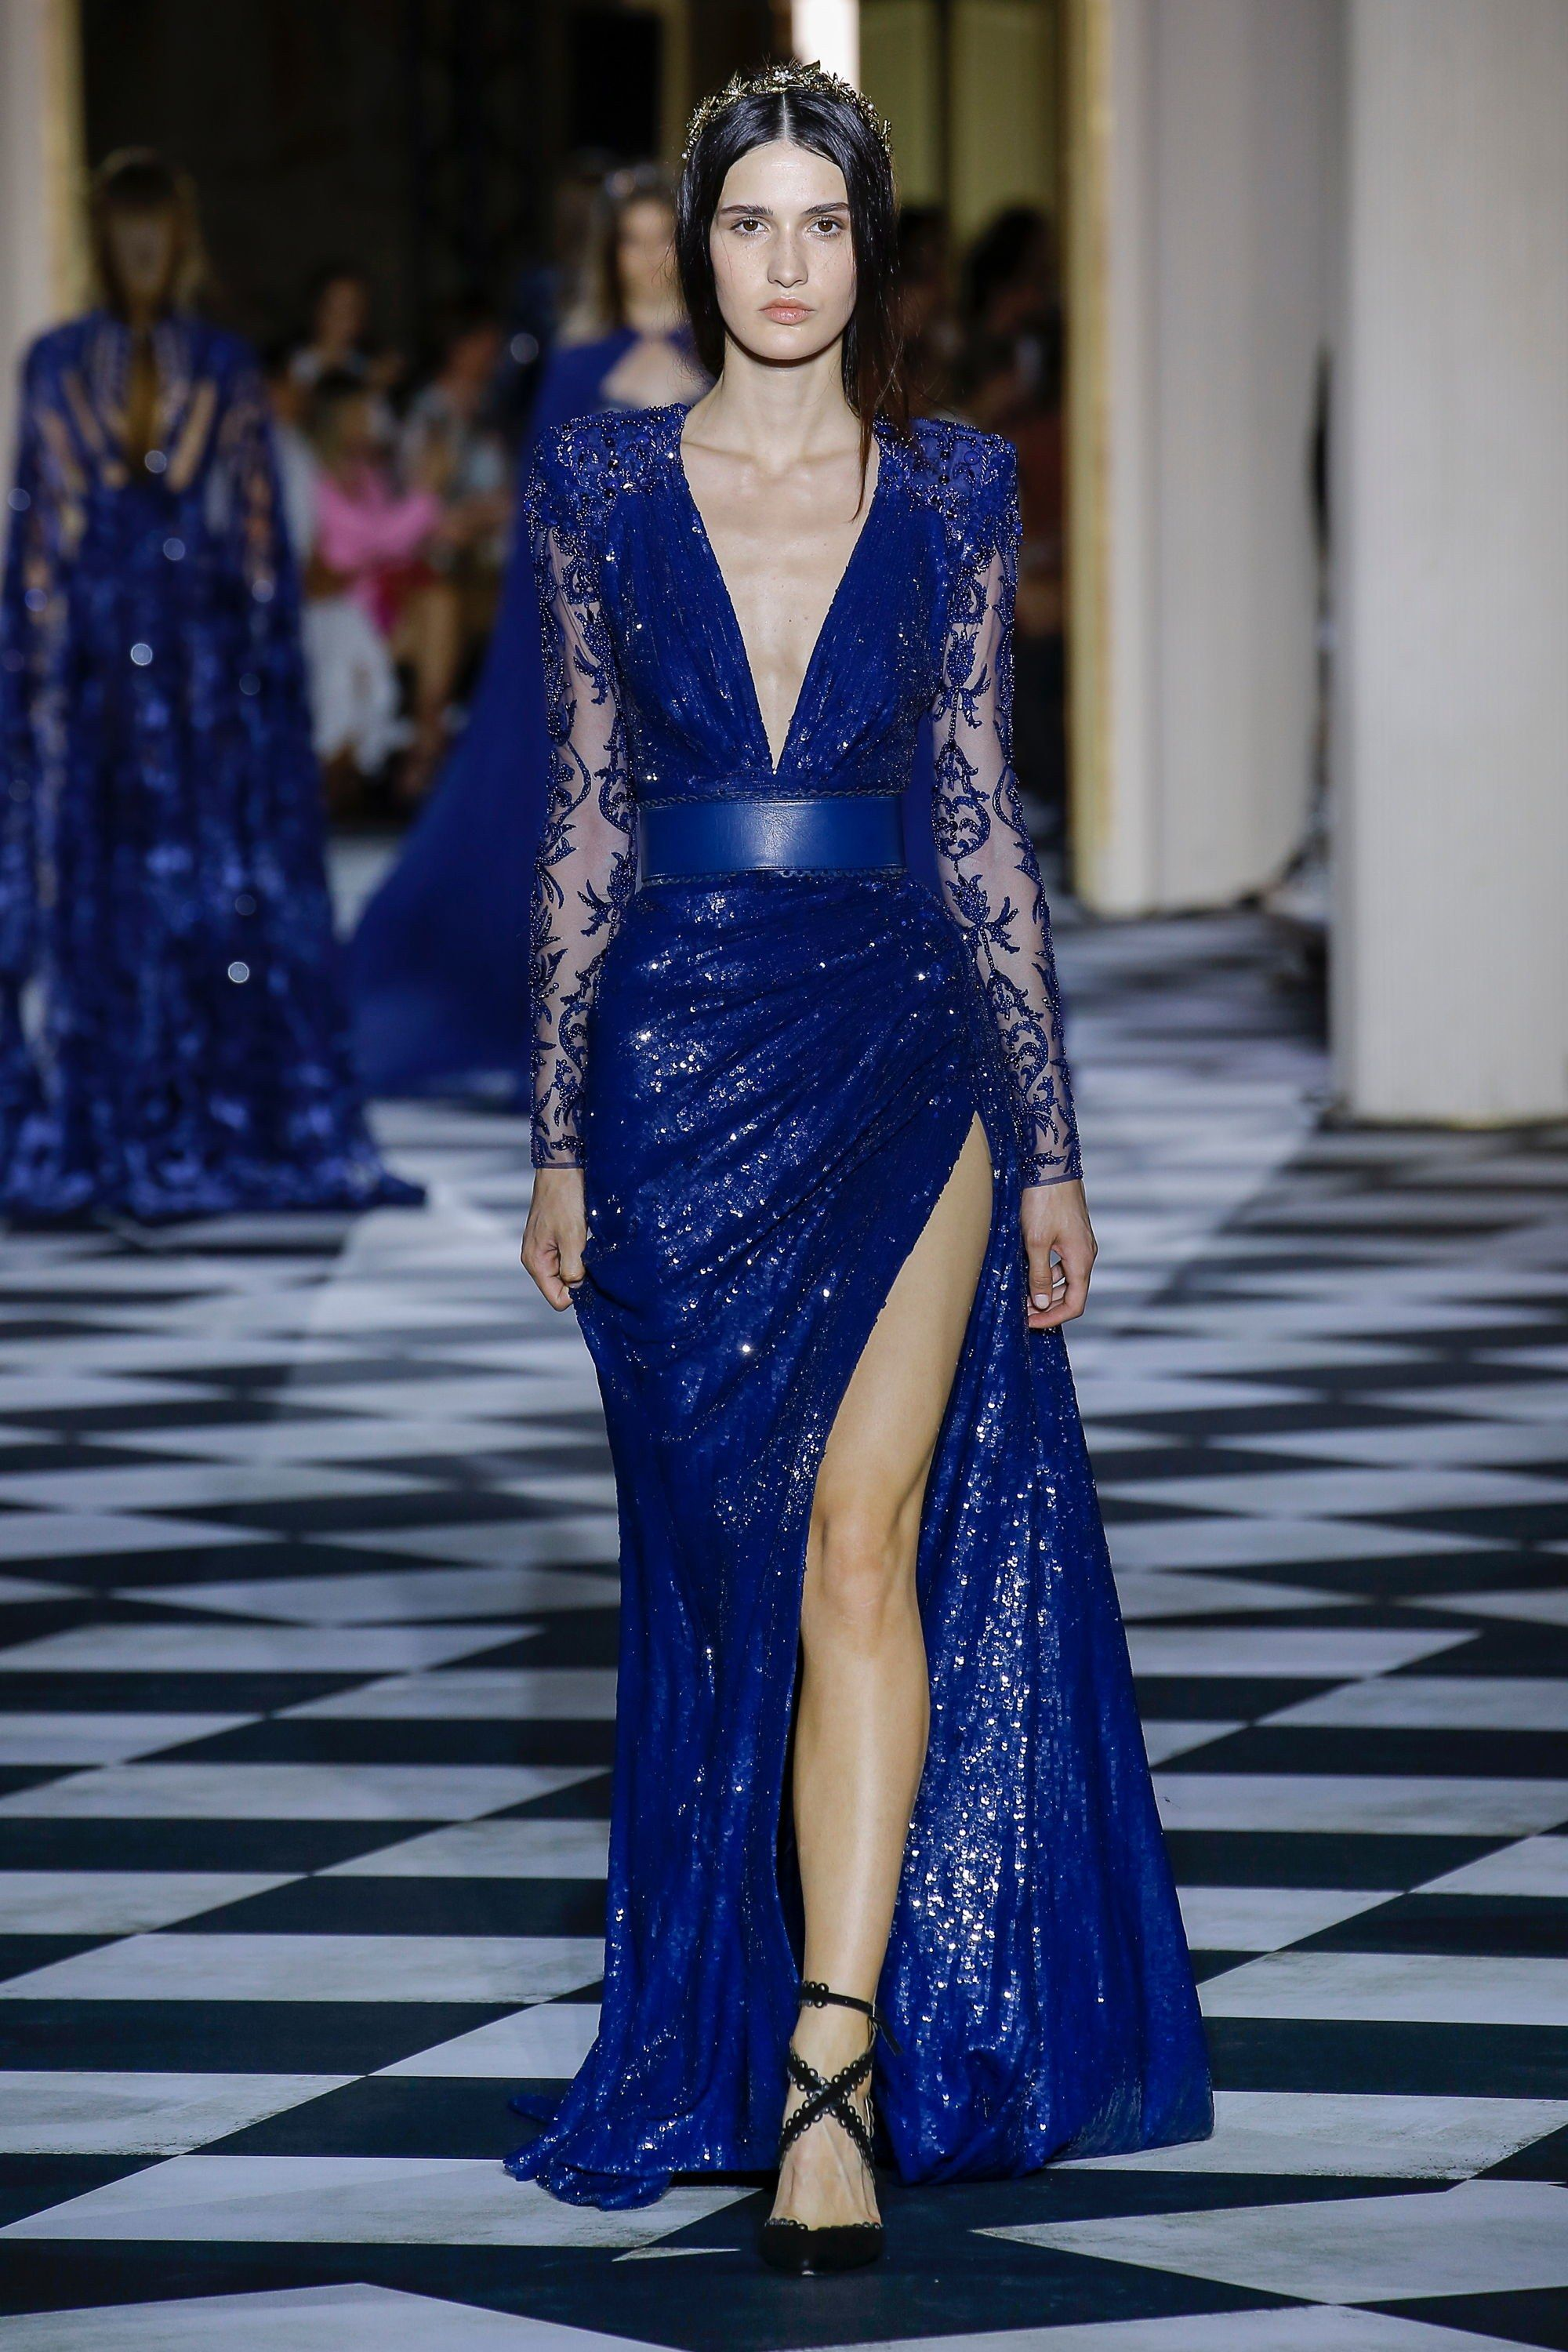 fb894bcdb5c Zuhair Murad Fall 2018 Couture Collection - Vogue